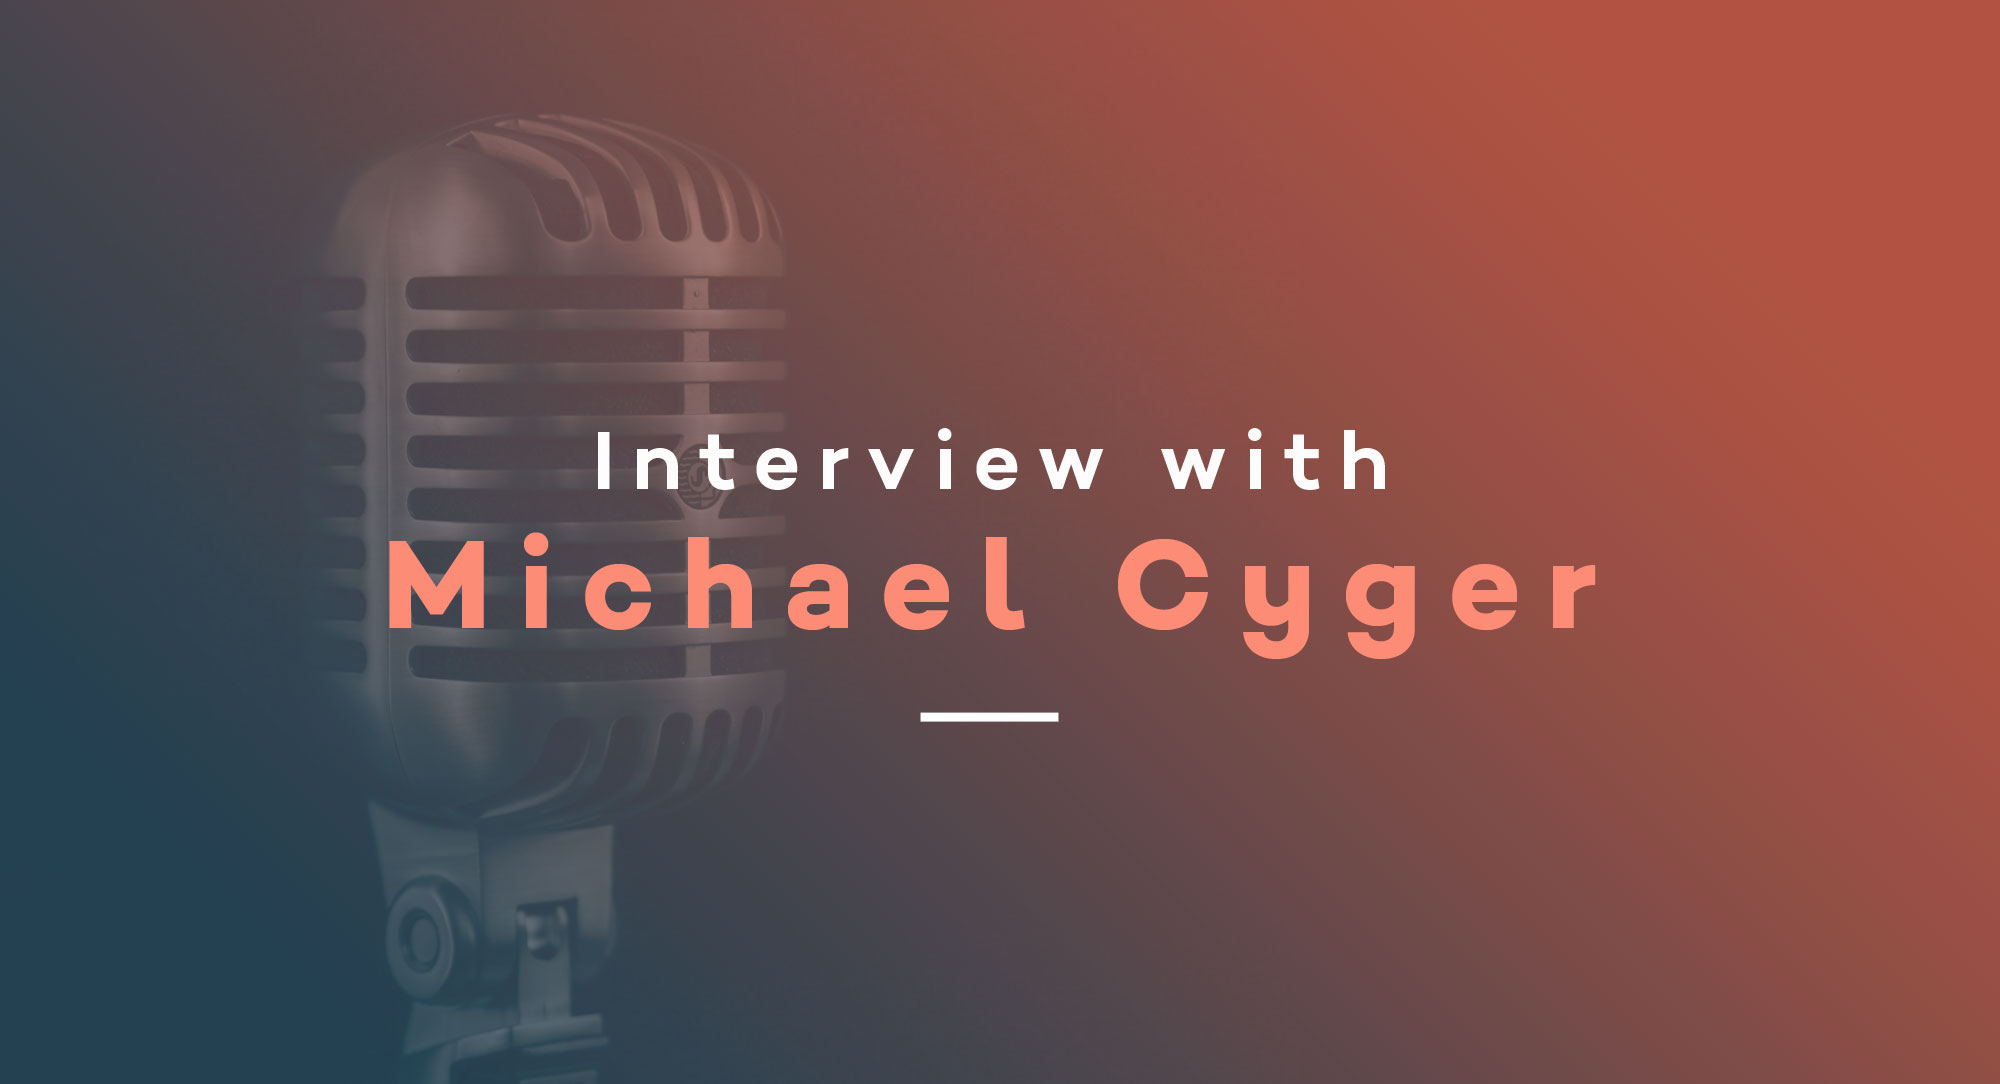 Interview with Michael Cyger